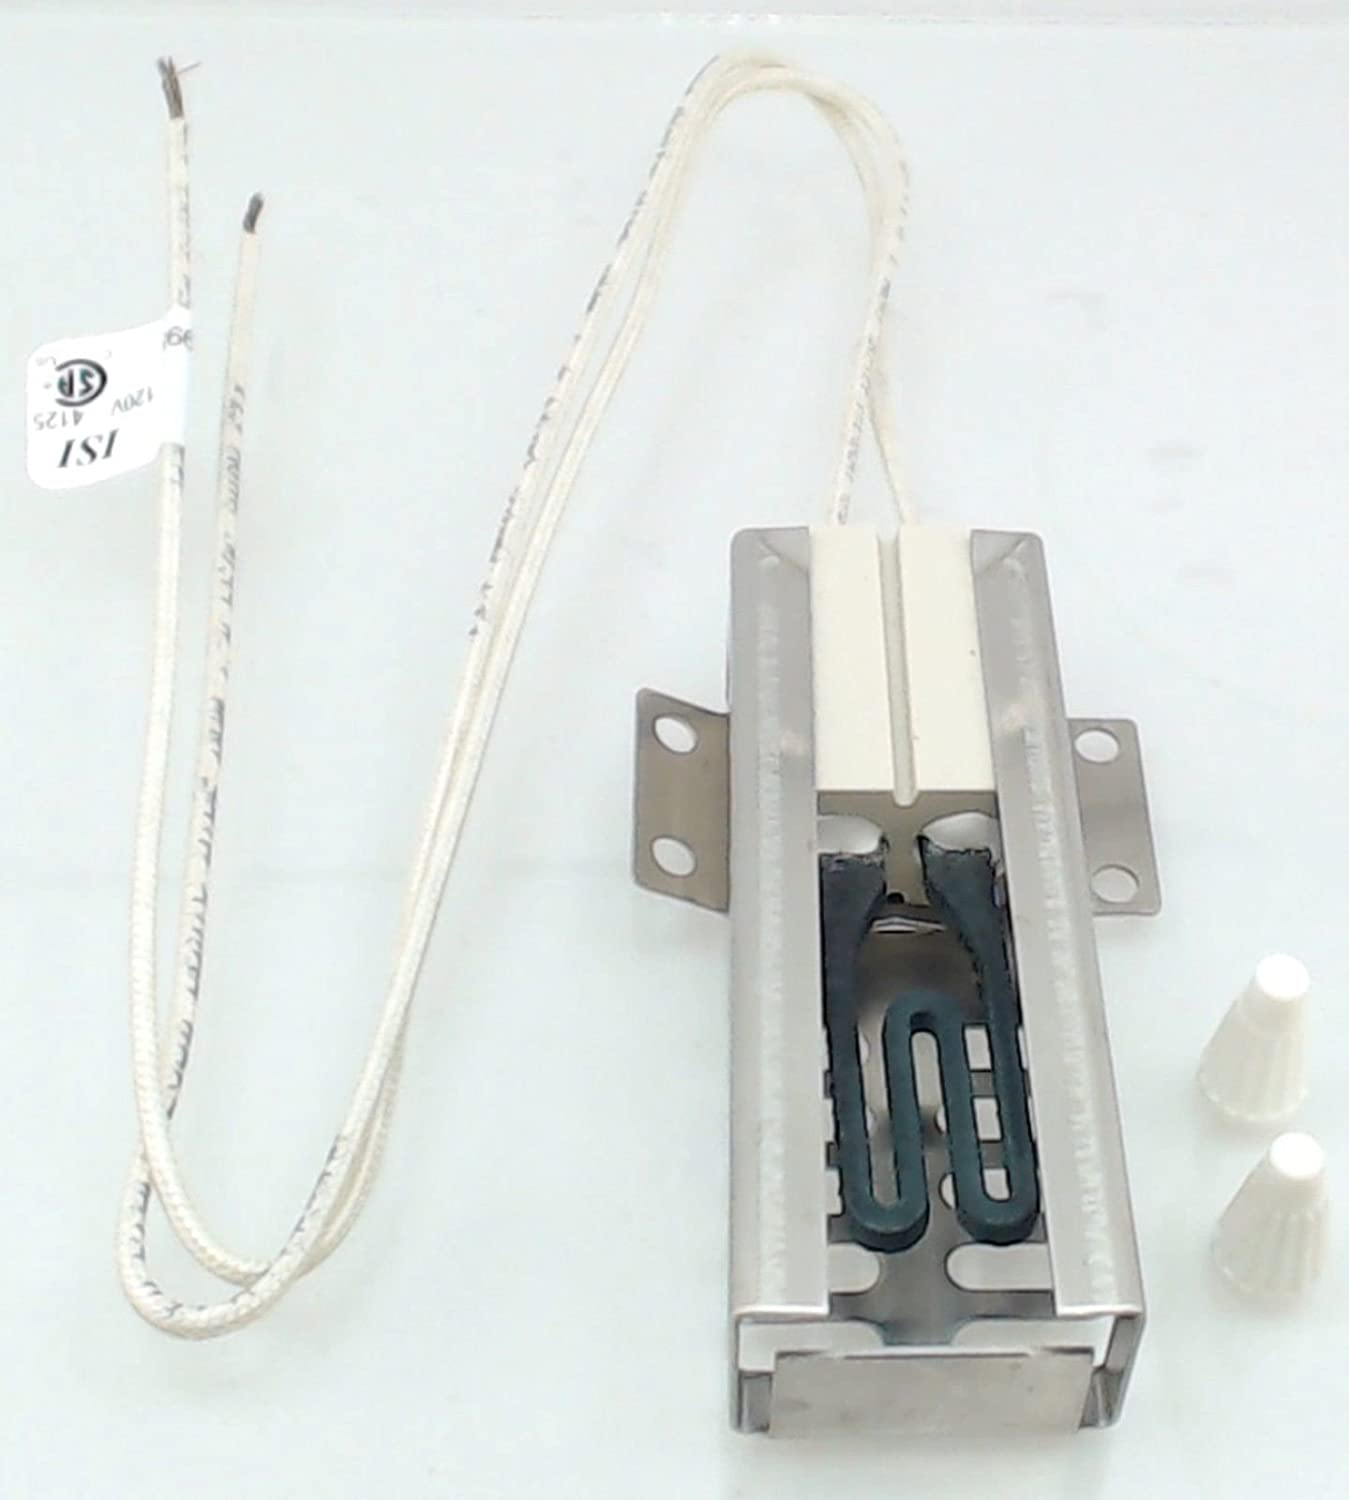 NewPowerGear Oven Ignitor Replacement For Frigidaire FGF318GCB FGF318GCC FGF319KBA FGF319KBB FGF319KSA FGF319KSB FGF326KBA FGF326KBB FGF326KBC